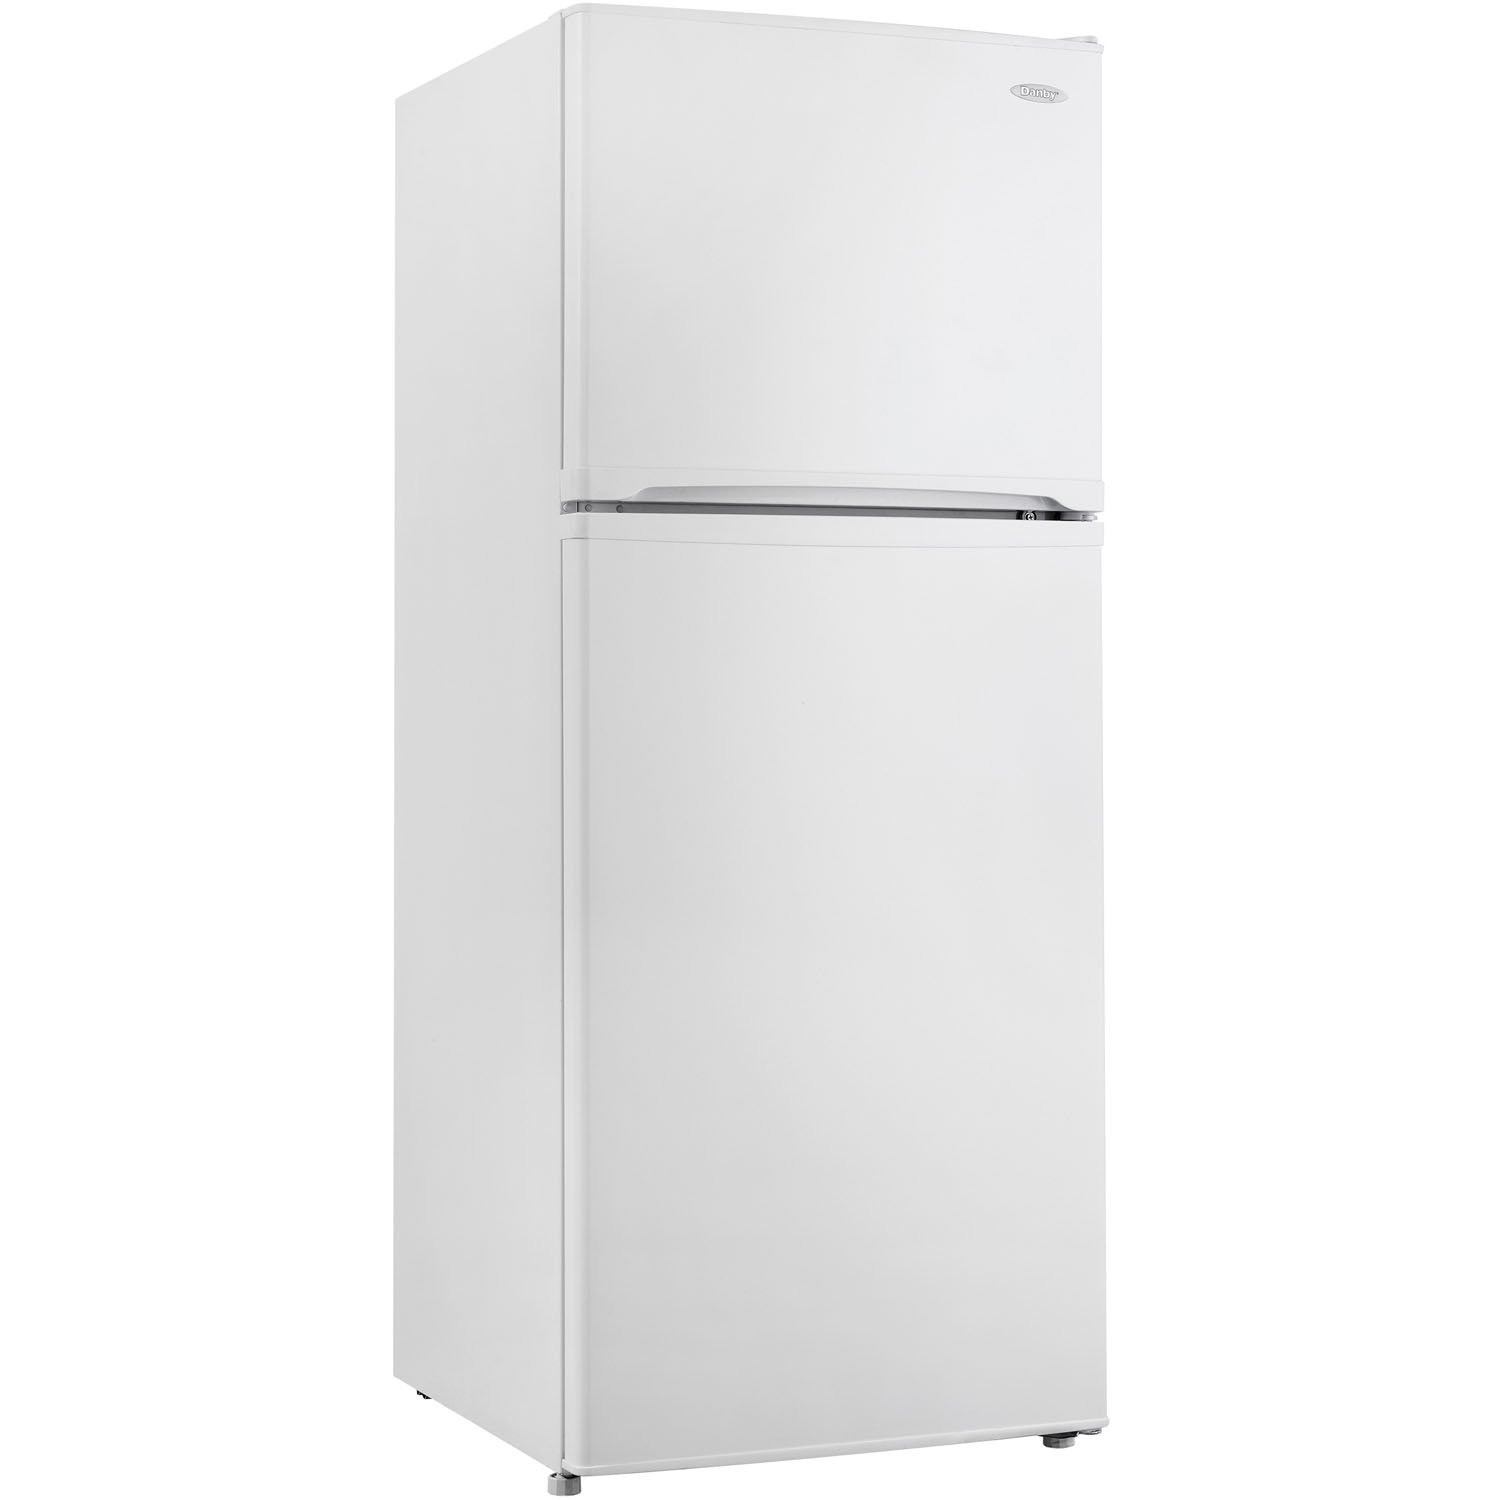 Danby DFF100C1WDB Frost-Free Refrigerator with Top-Mount Freezer, 9.9 Cubic Feet, White ALMO - Dropship